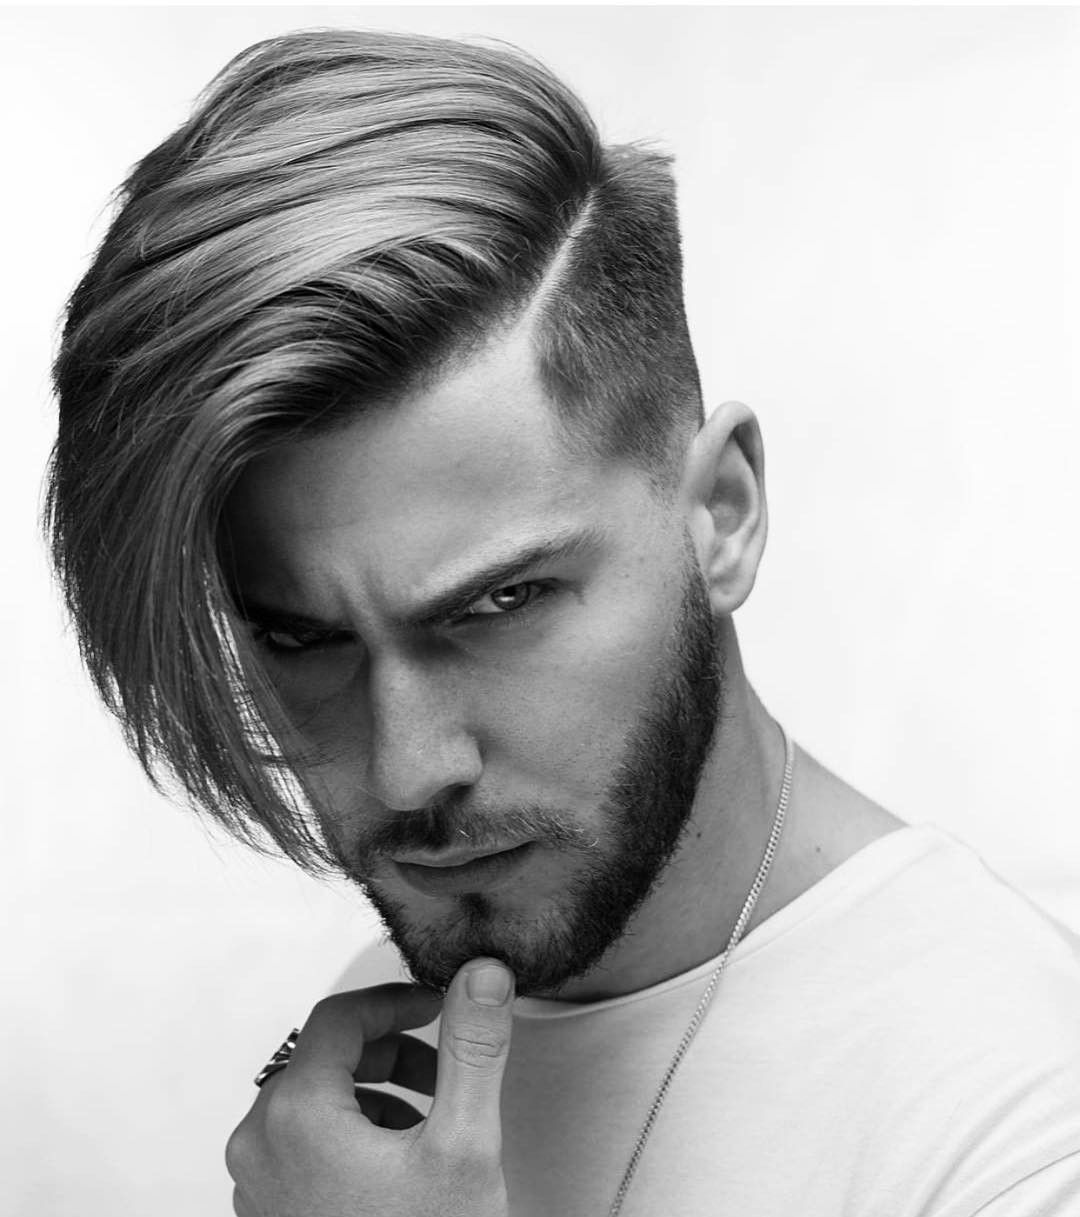 nice hair styles men 60 marvelous s side swept hairstyles neat and 5843 | b24d5296489813cdae297a7d537d72c4